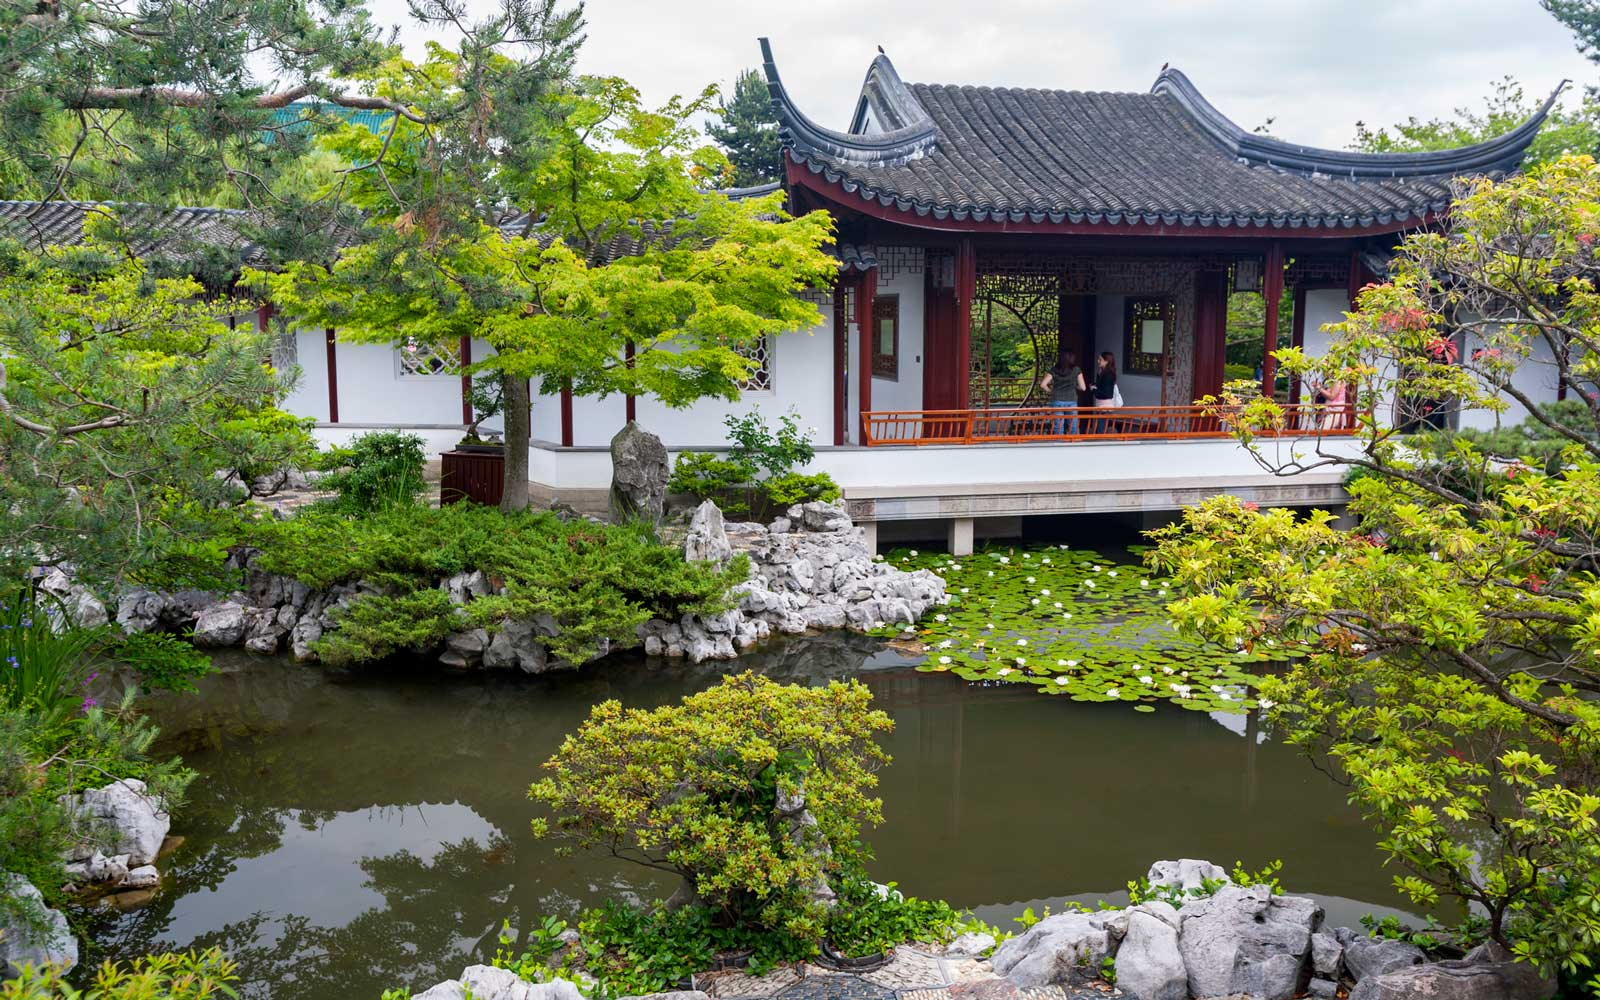 Chinese Gardens in Vancouver